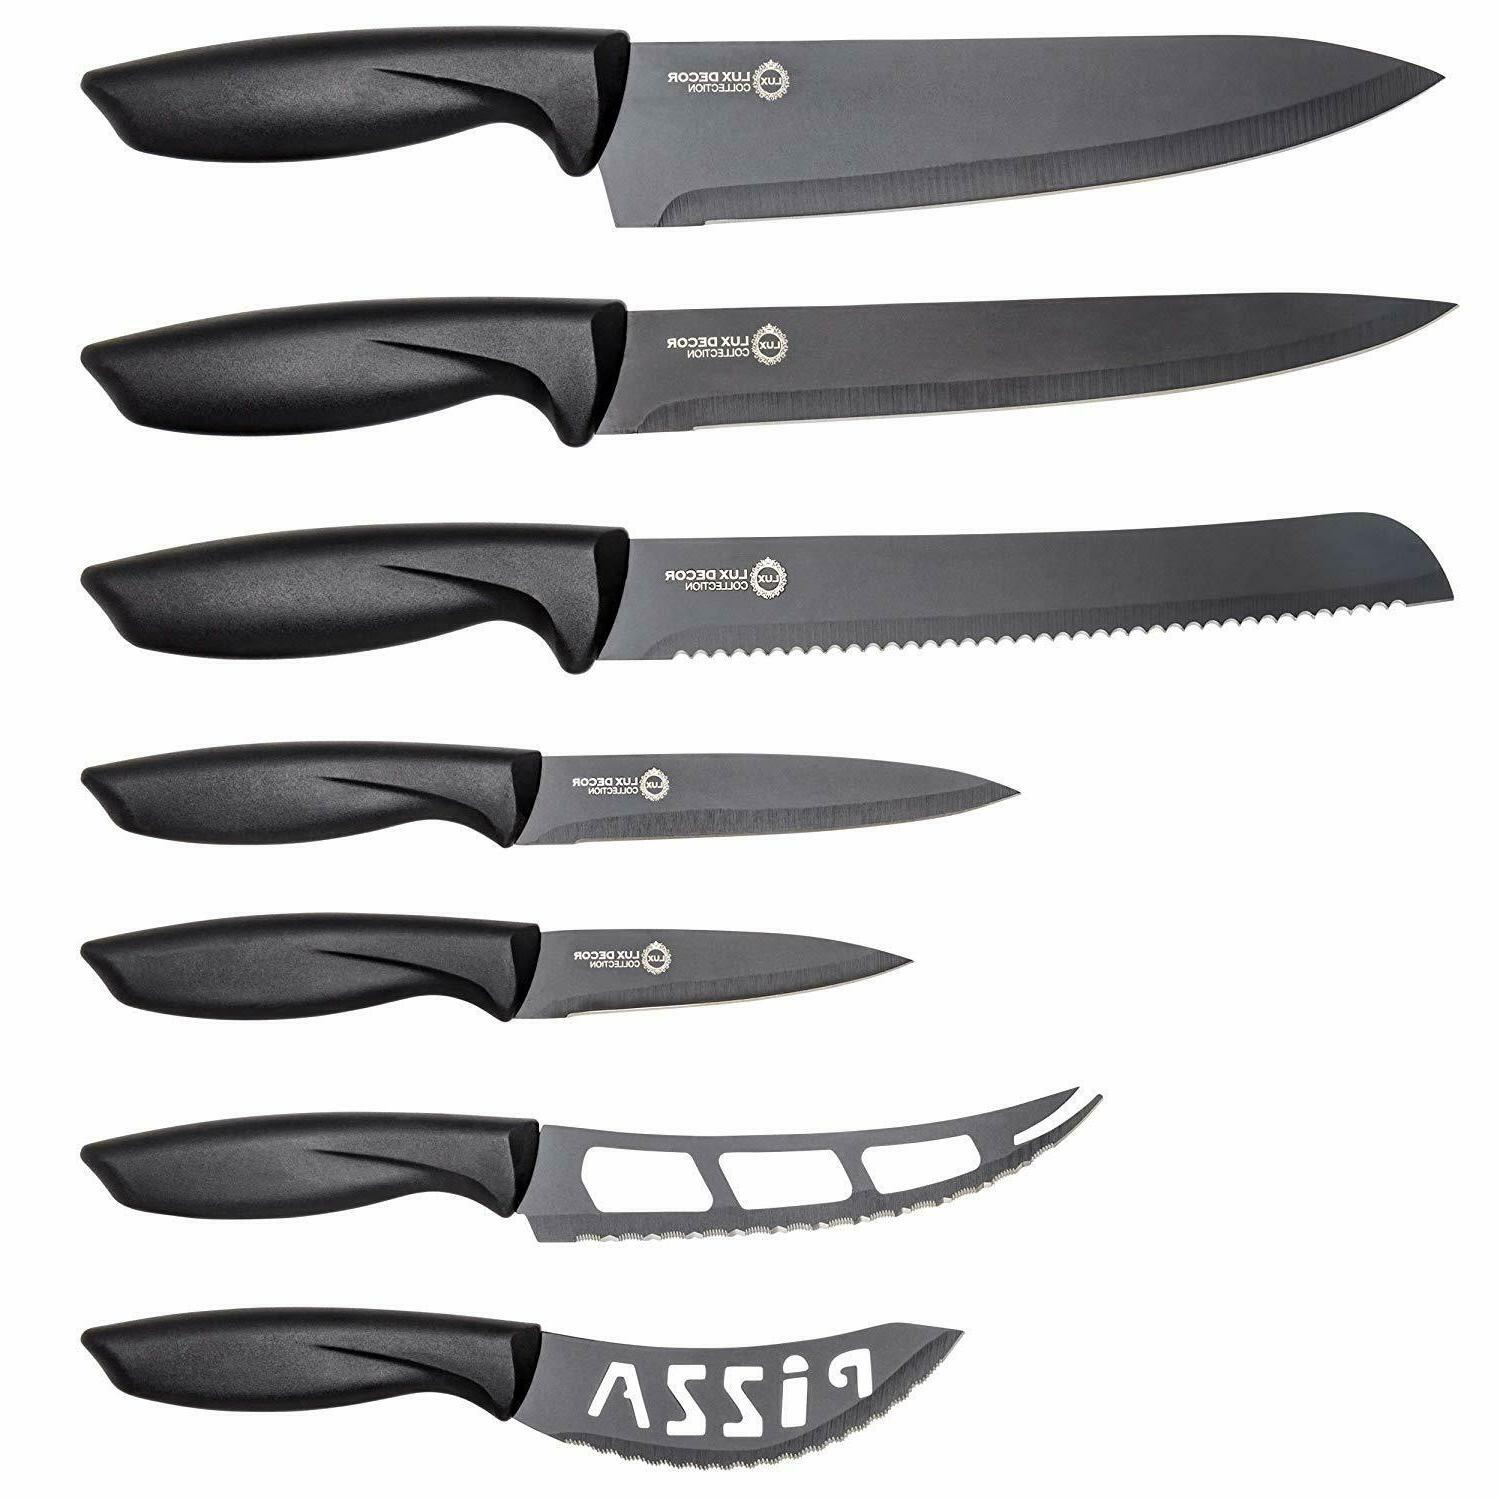 Professional Stainless Steel Kitchen Knife Set-7 Piece Cutle